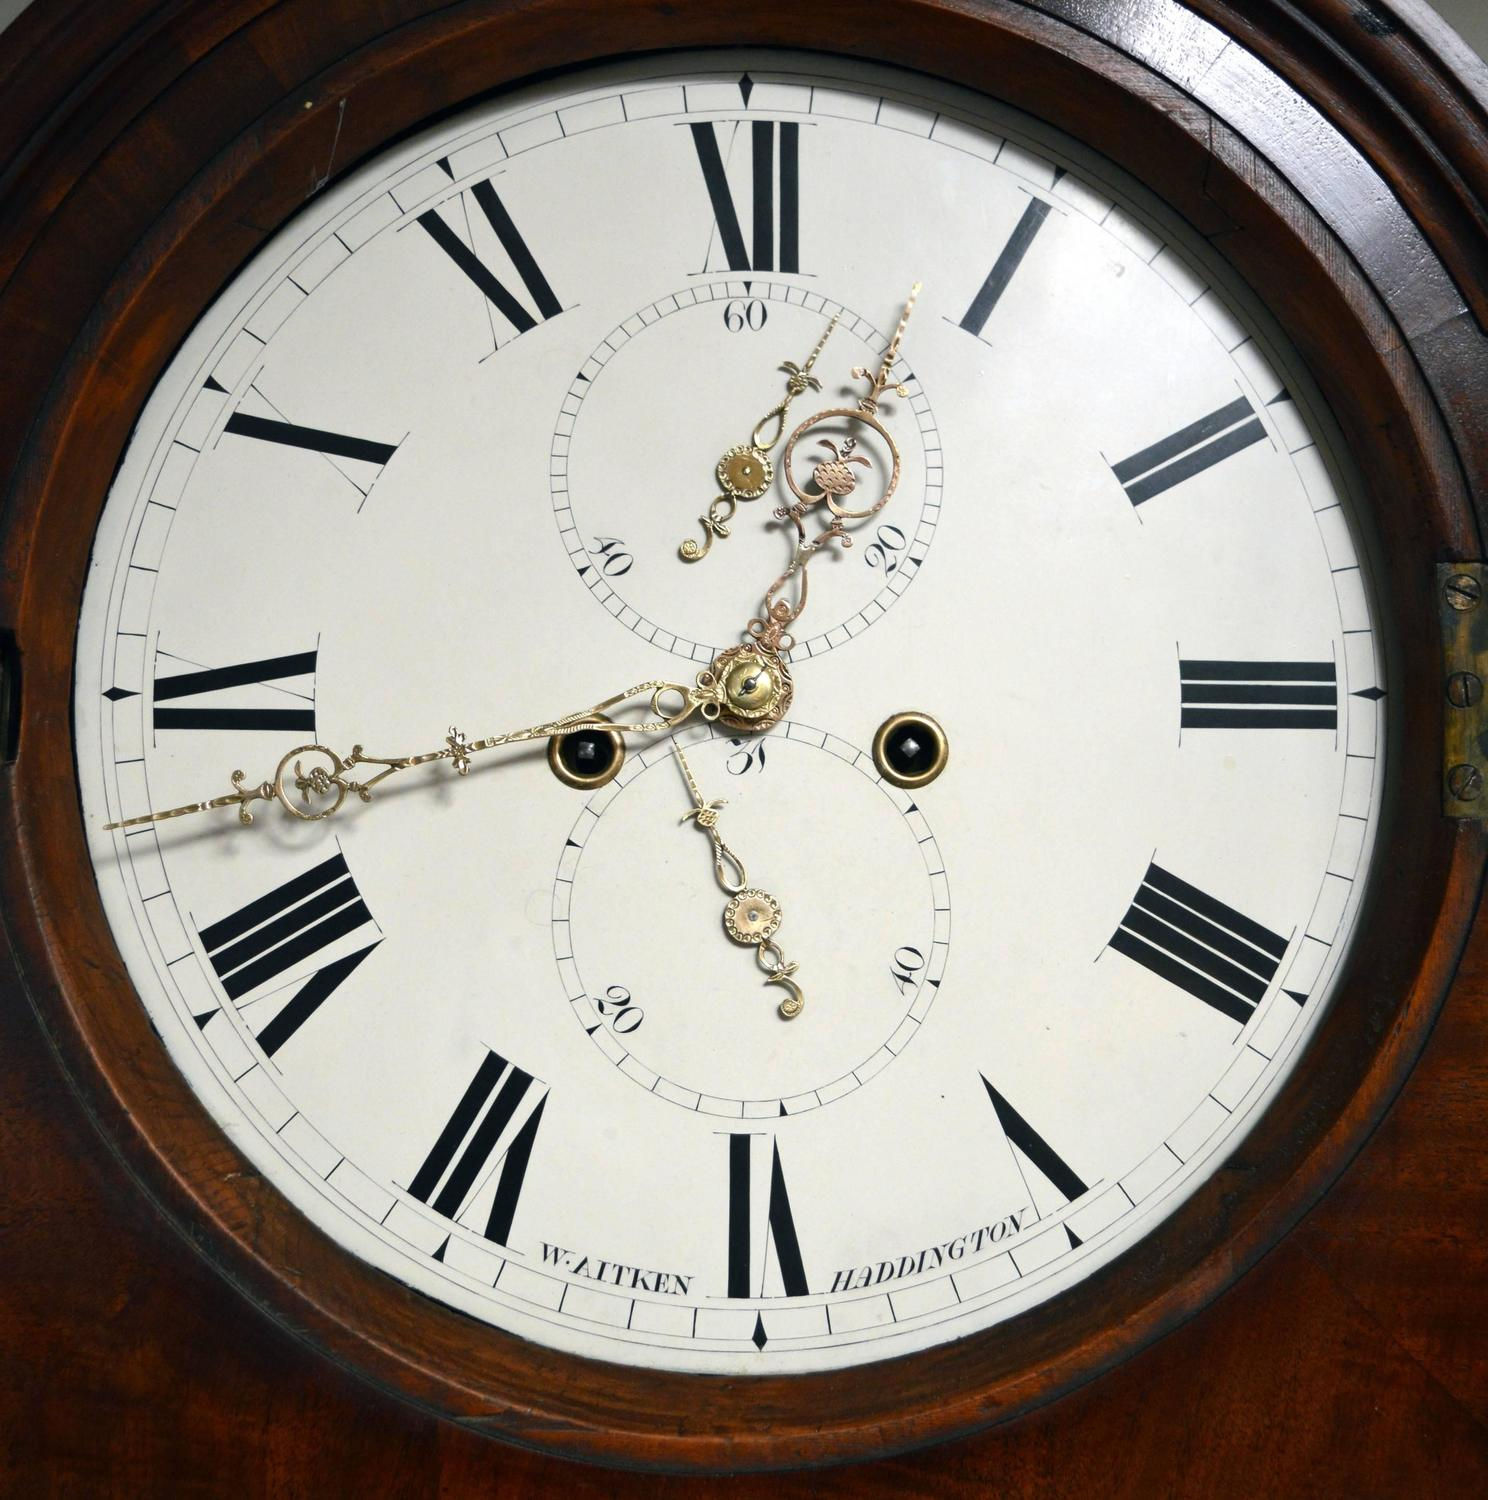 dating grandfather clocks We are a full service clock shop specializing in sales, repairs and restorations antique clocks are our hobby, love and business.